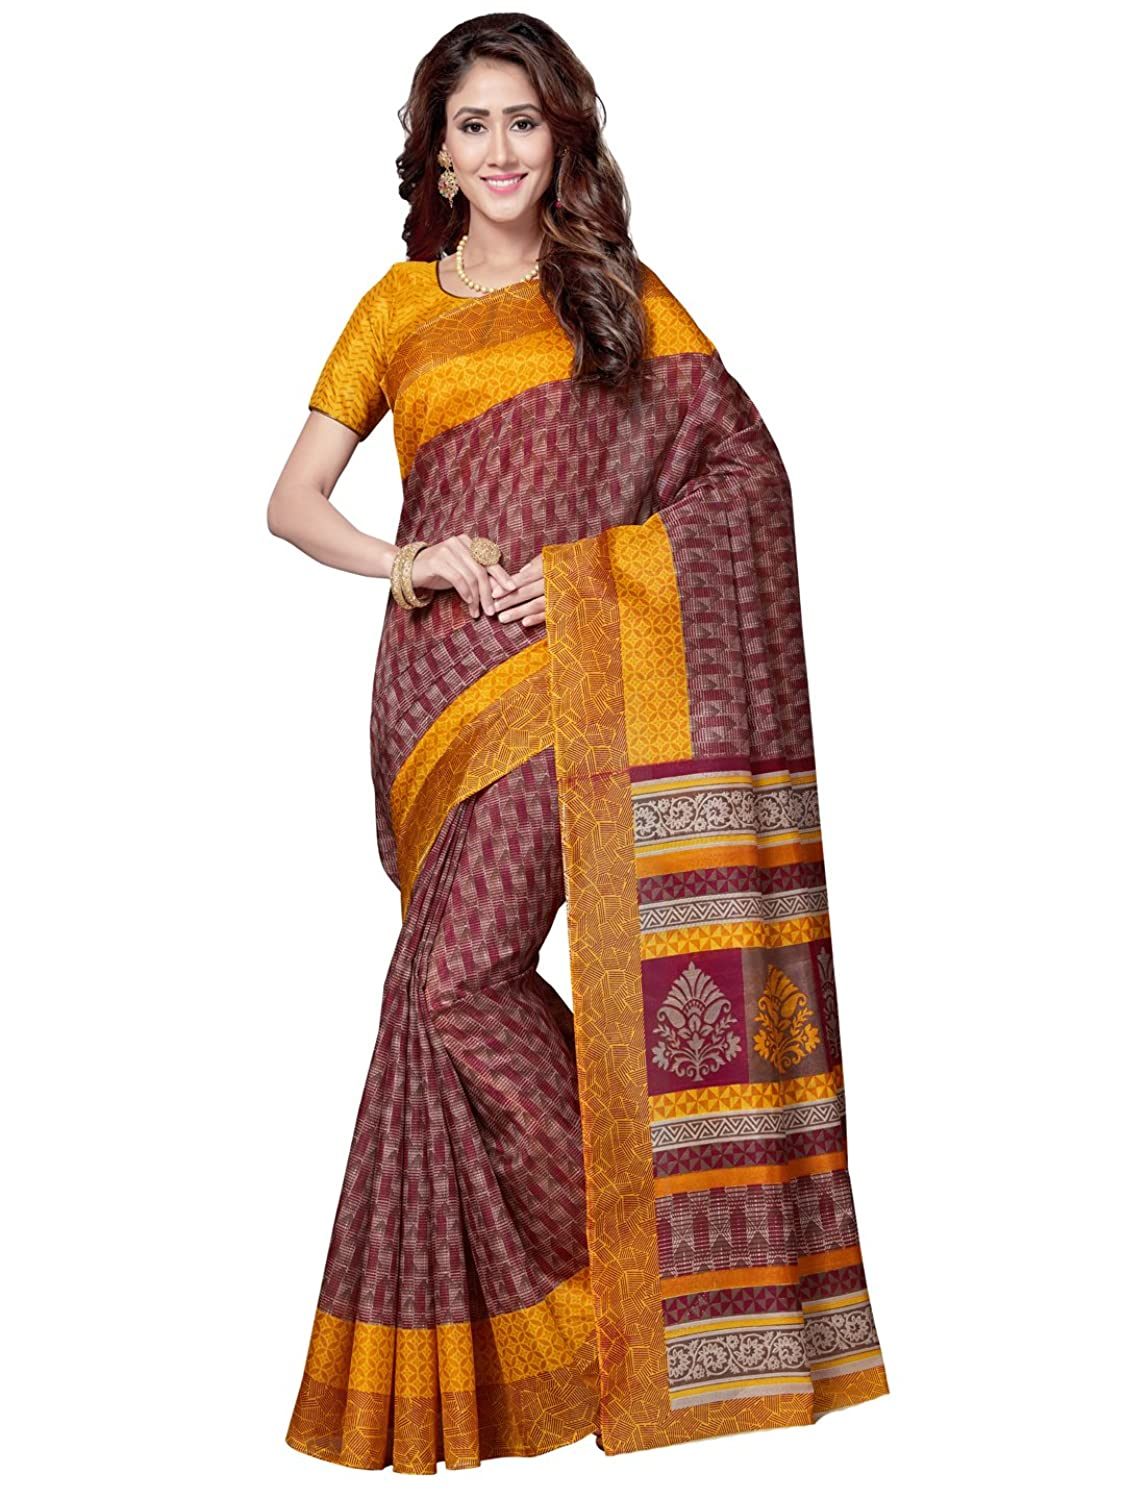 85dee679b3064 Saree Swarg Maroon and Yellow Art Silk Printed Saree with Blouse 4214-A   Amazon.in  Clothing   Accessories